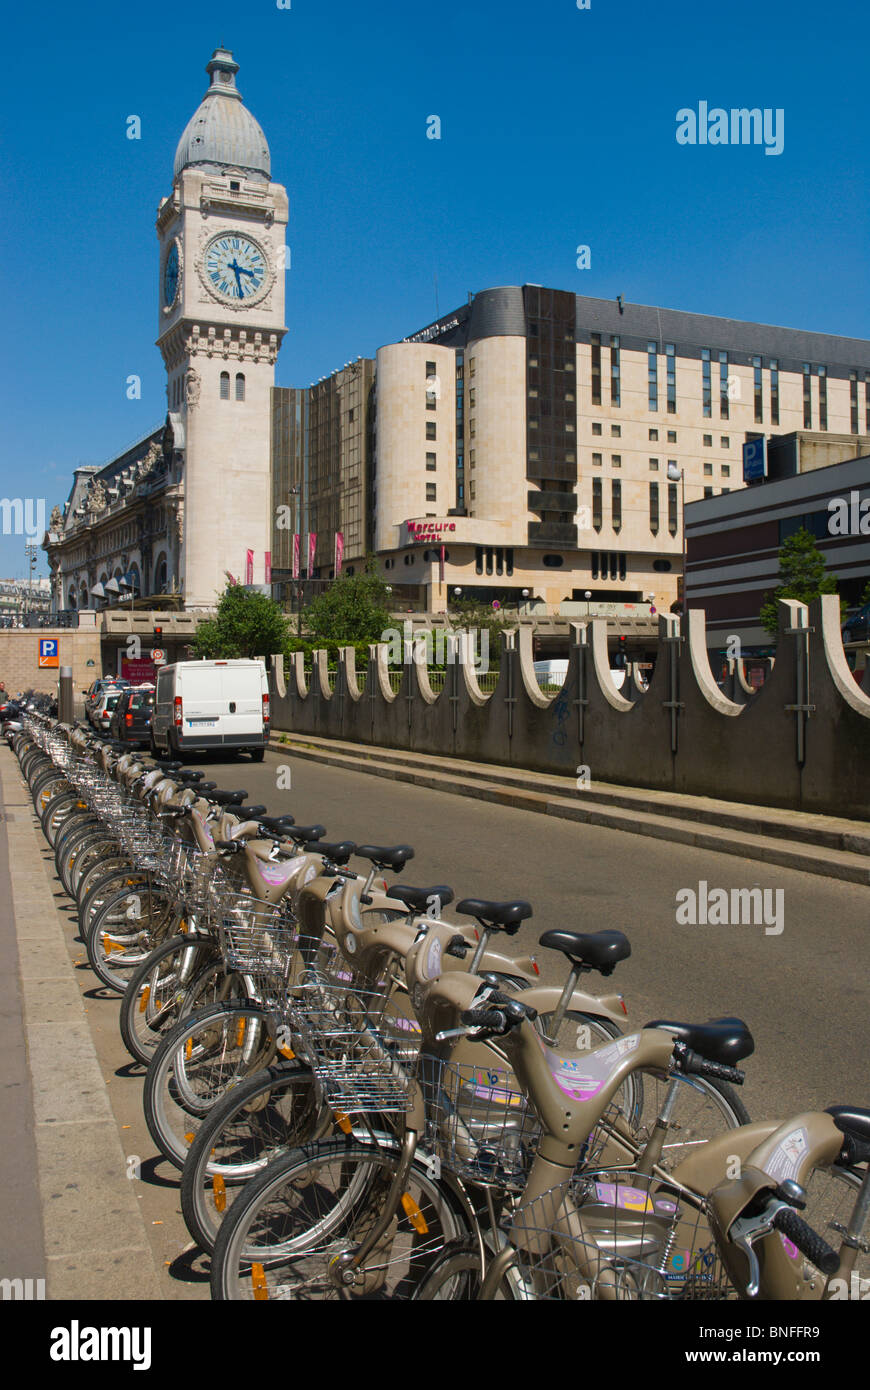 Velib rental bicycles Bercy district central Paris France Europe - Stock Image